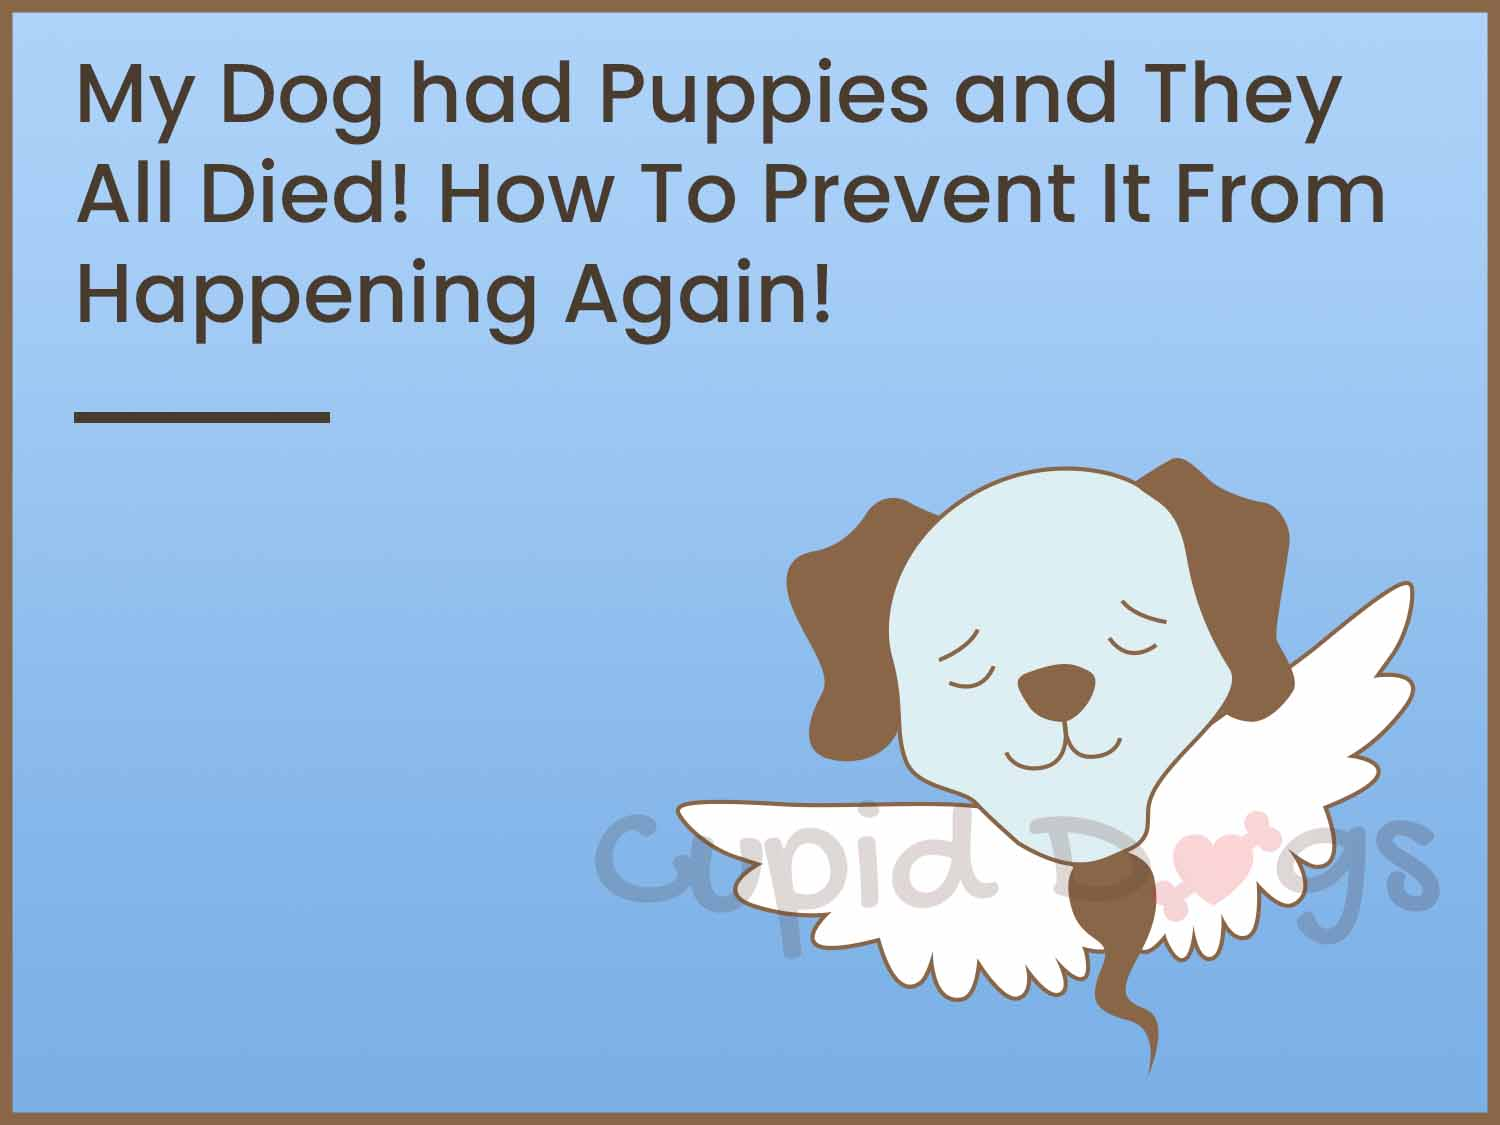 My Dog had Puppies and they All Died! How To Prevent It From